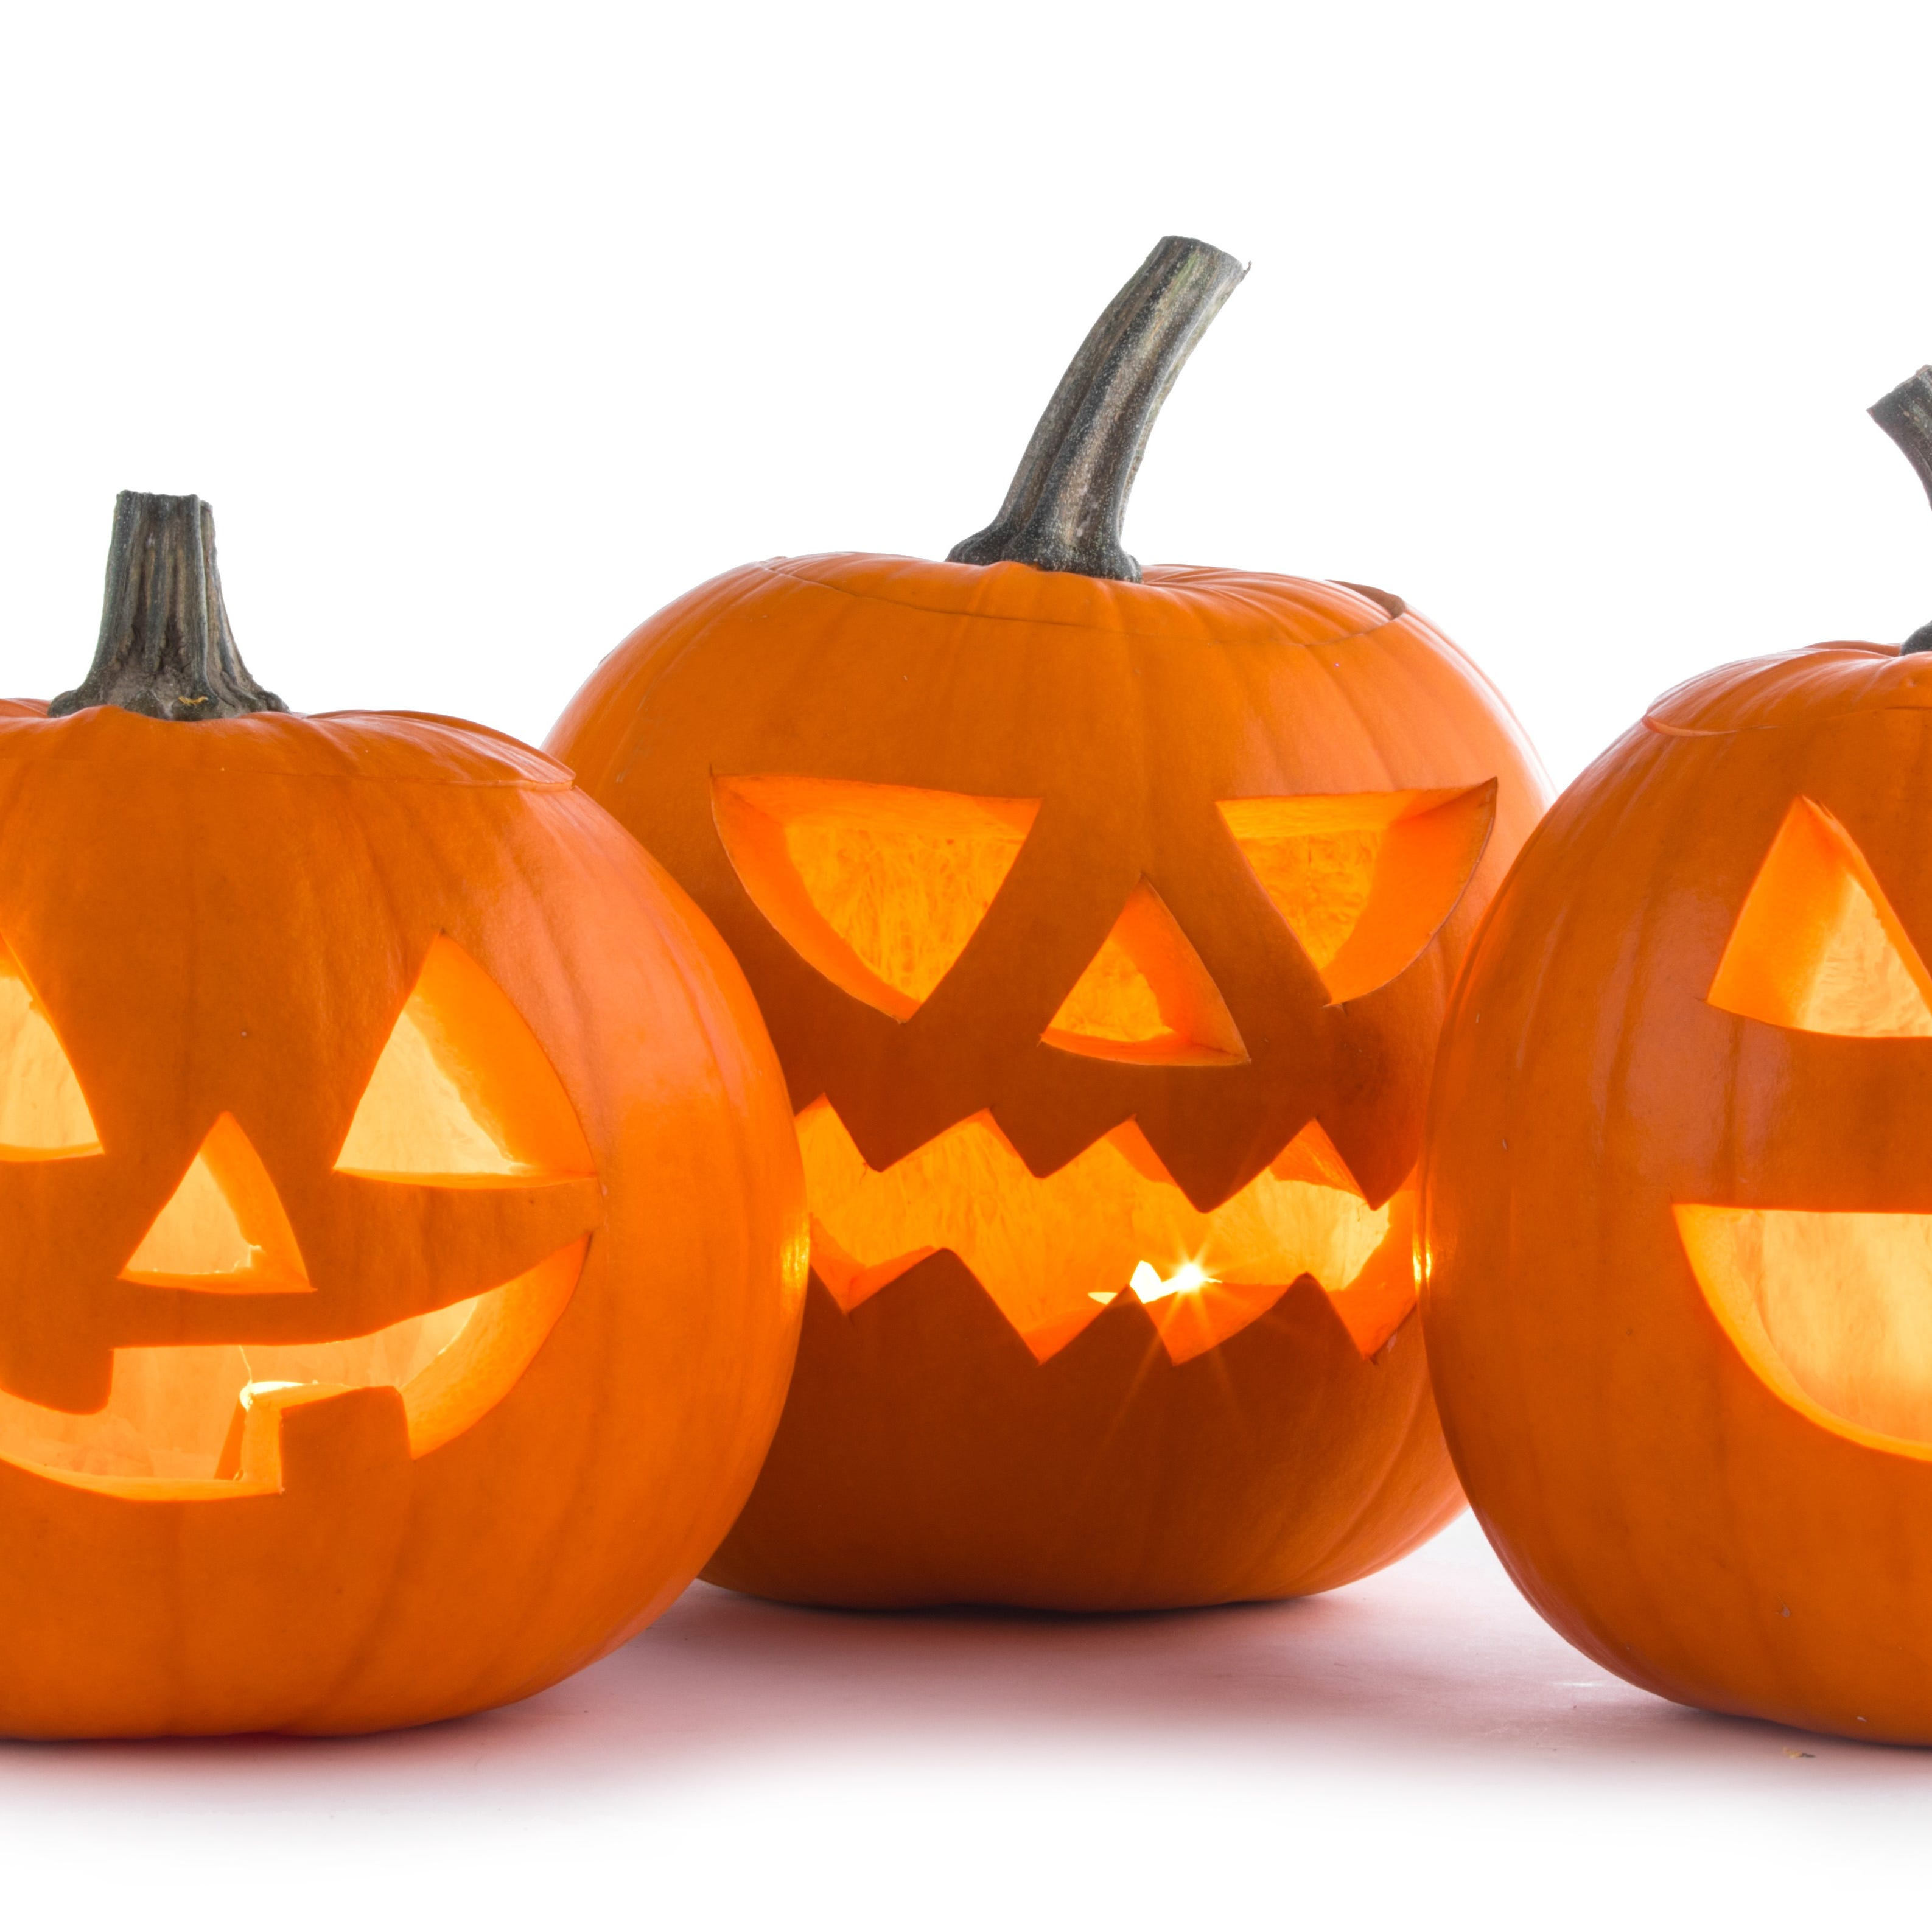 Looking for some spooky fun? Check out these Carlsbad events happening in October